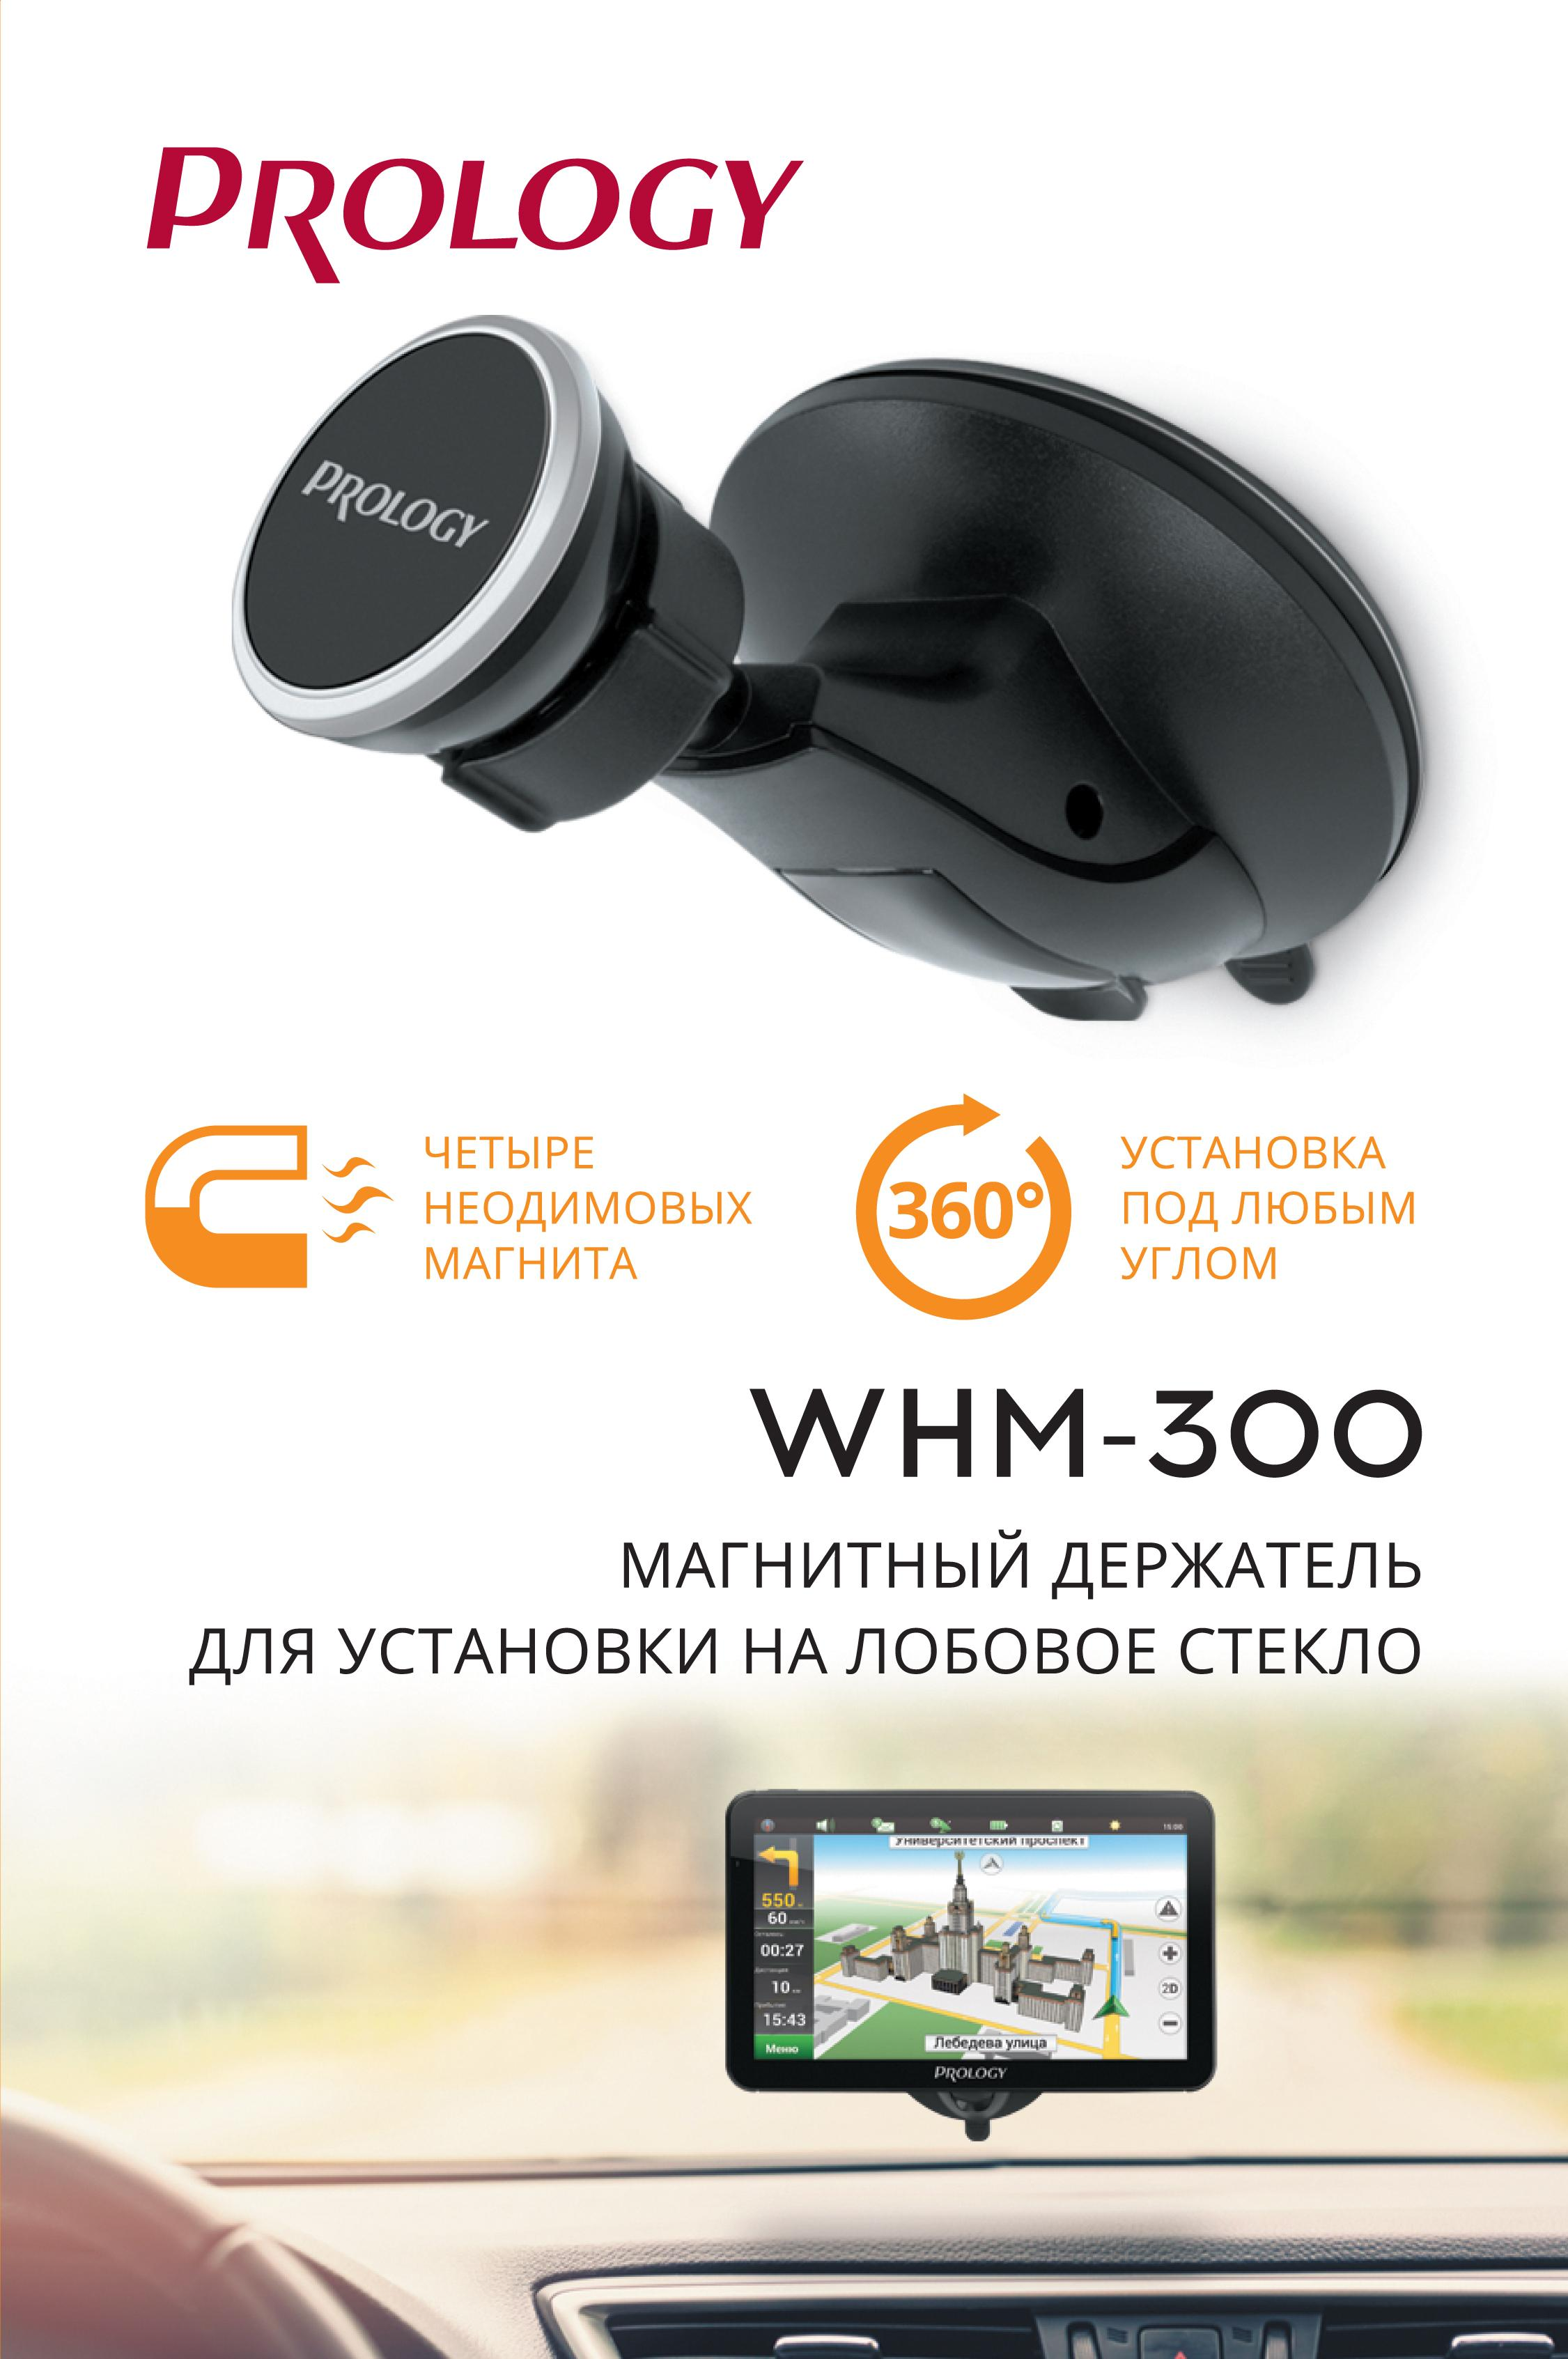 PROLOGY WHM-300